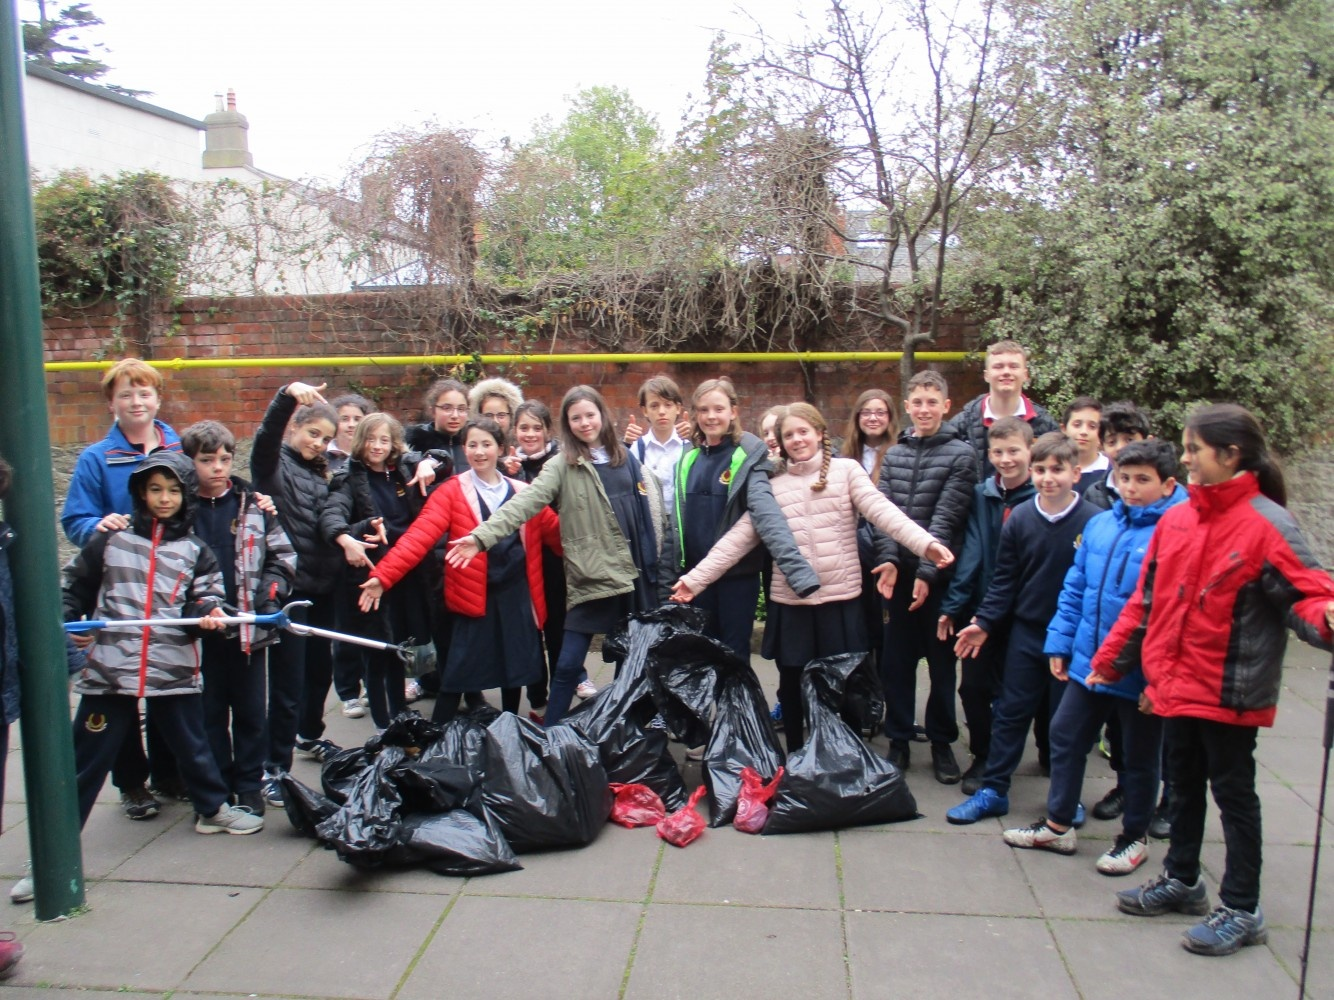 Litter Clean-up in Herzog Park